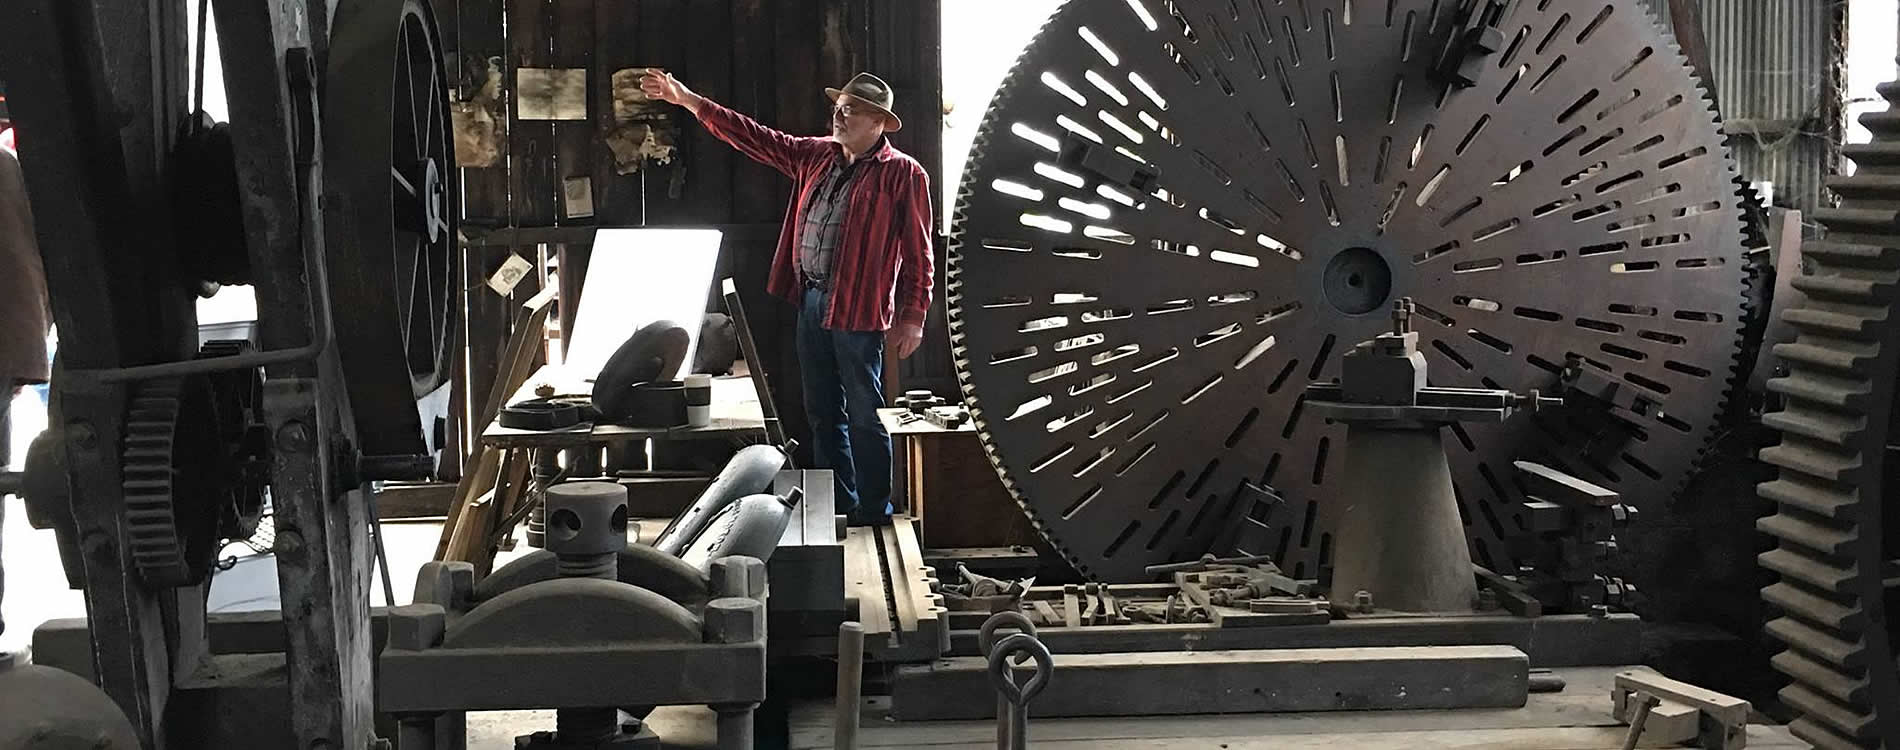 sutter creek knight foundry tours